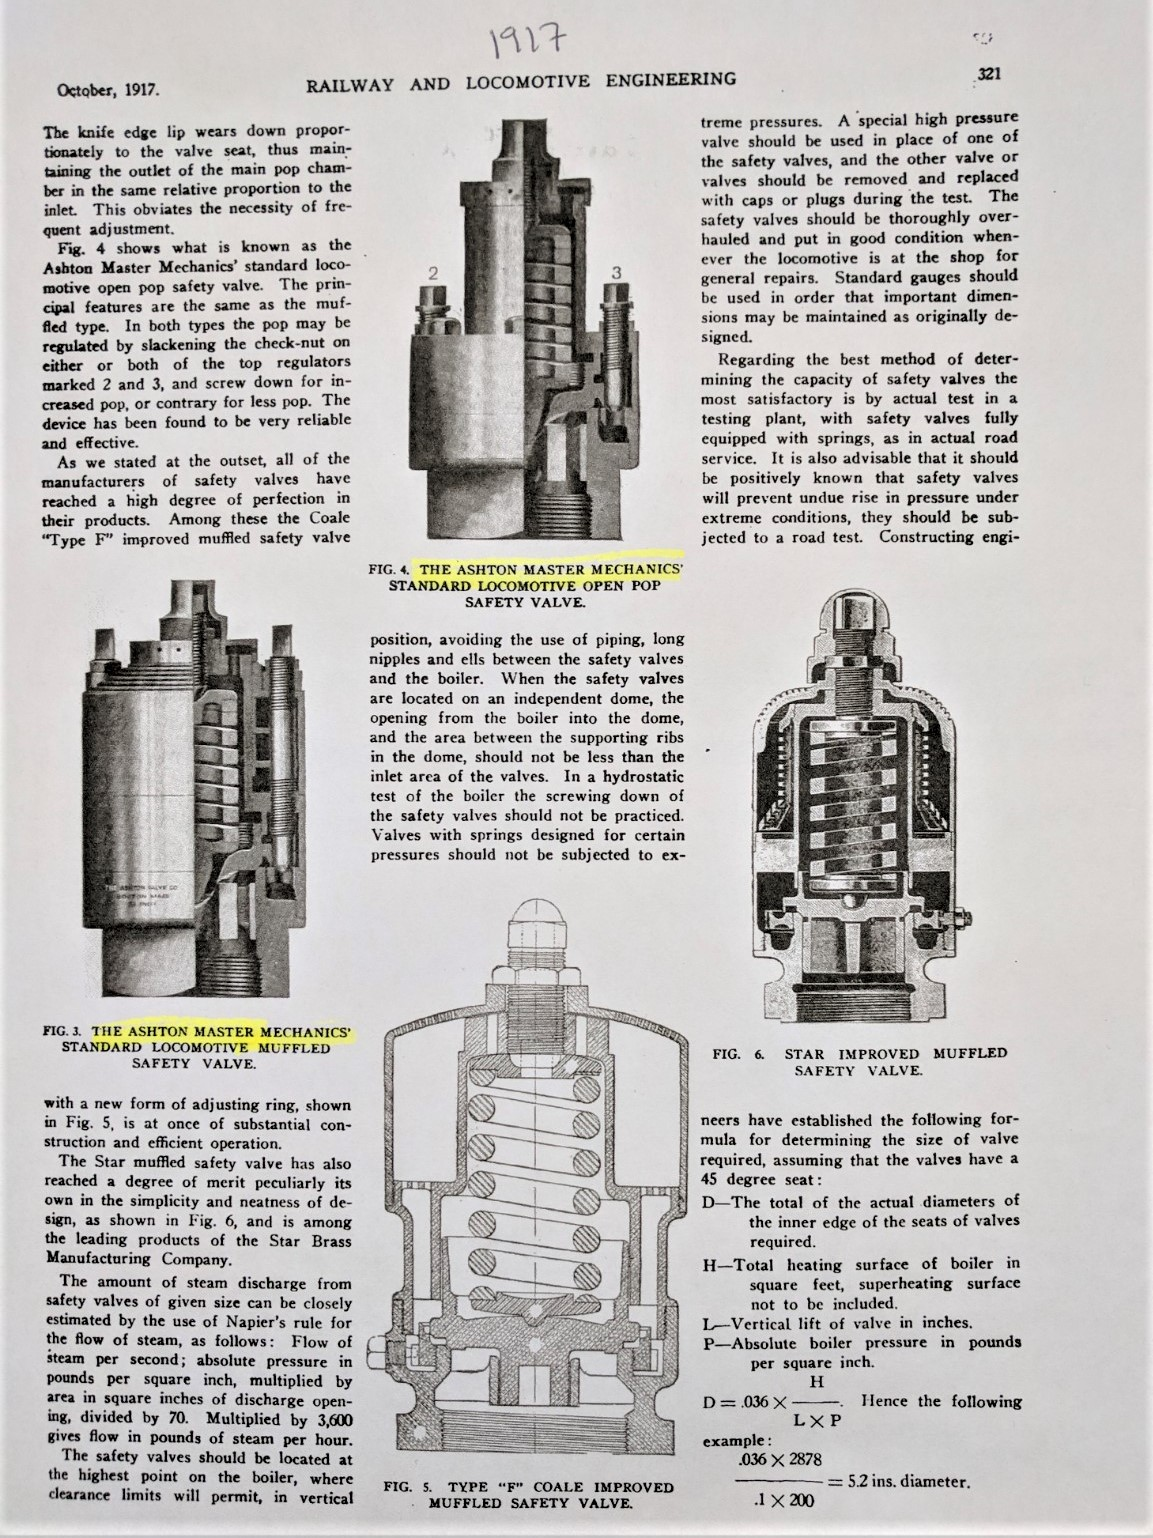 locomotive safety valve #2 1917.jpg